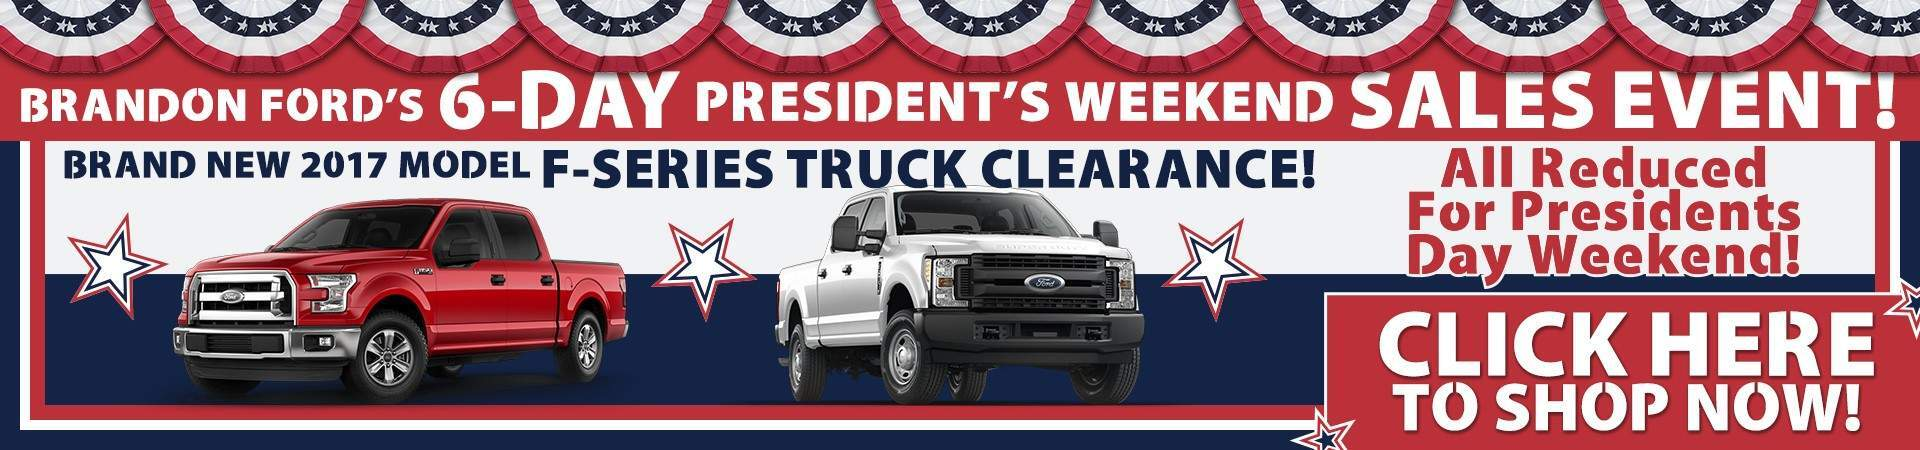 Pres Day F-Series Clearance